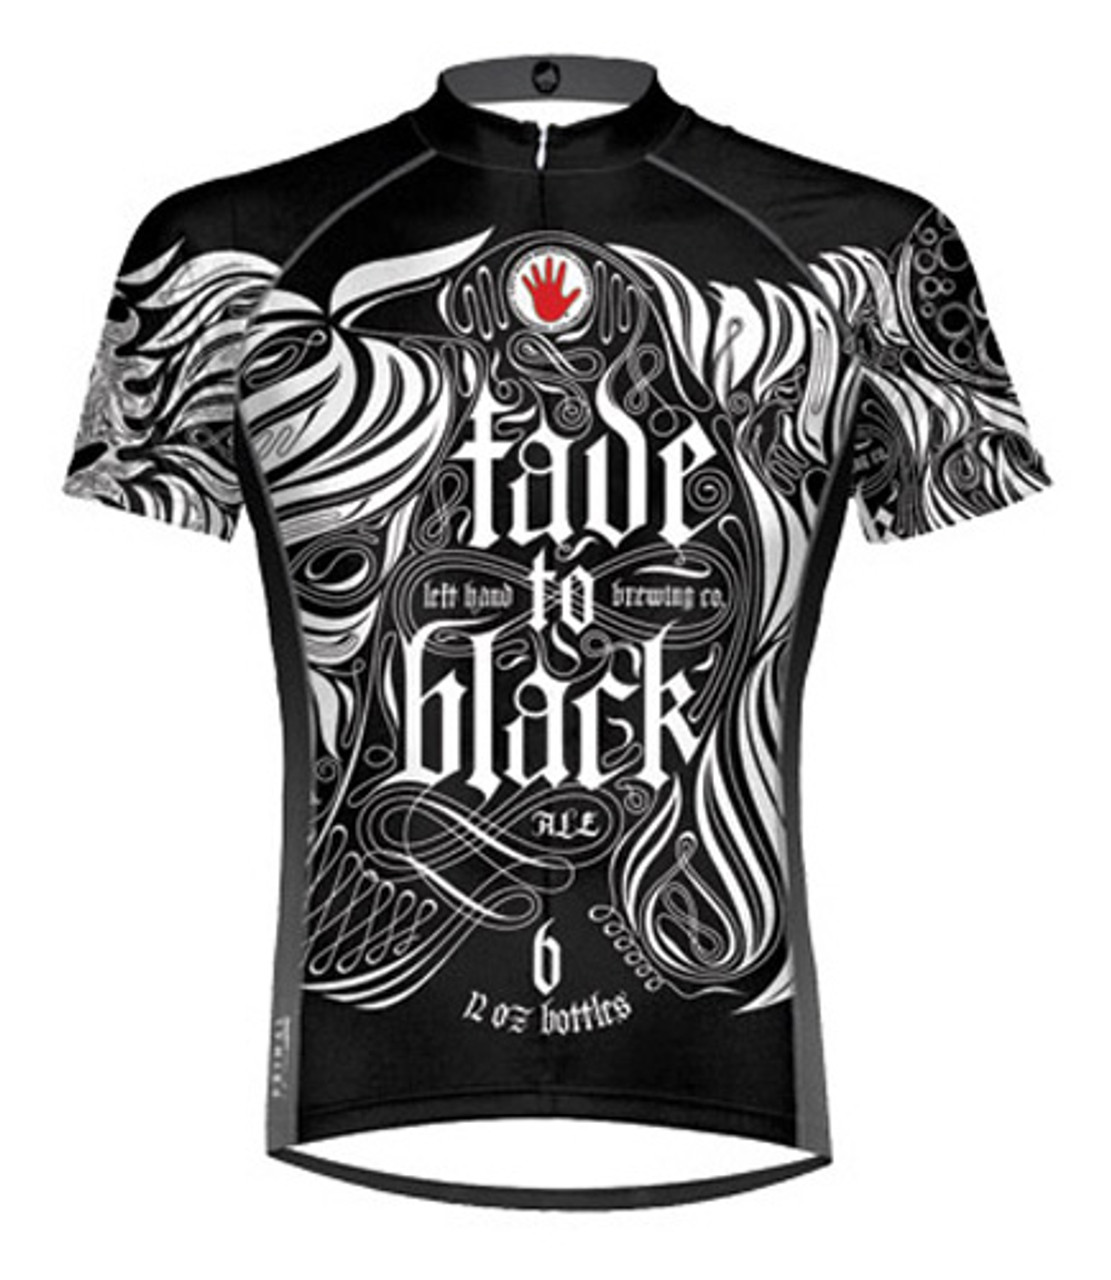 Primal Wear Left Hand Brewing Beer Cycling Jersey Men/'s with Socks bicycle bike